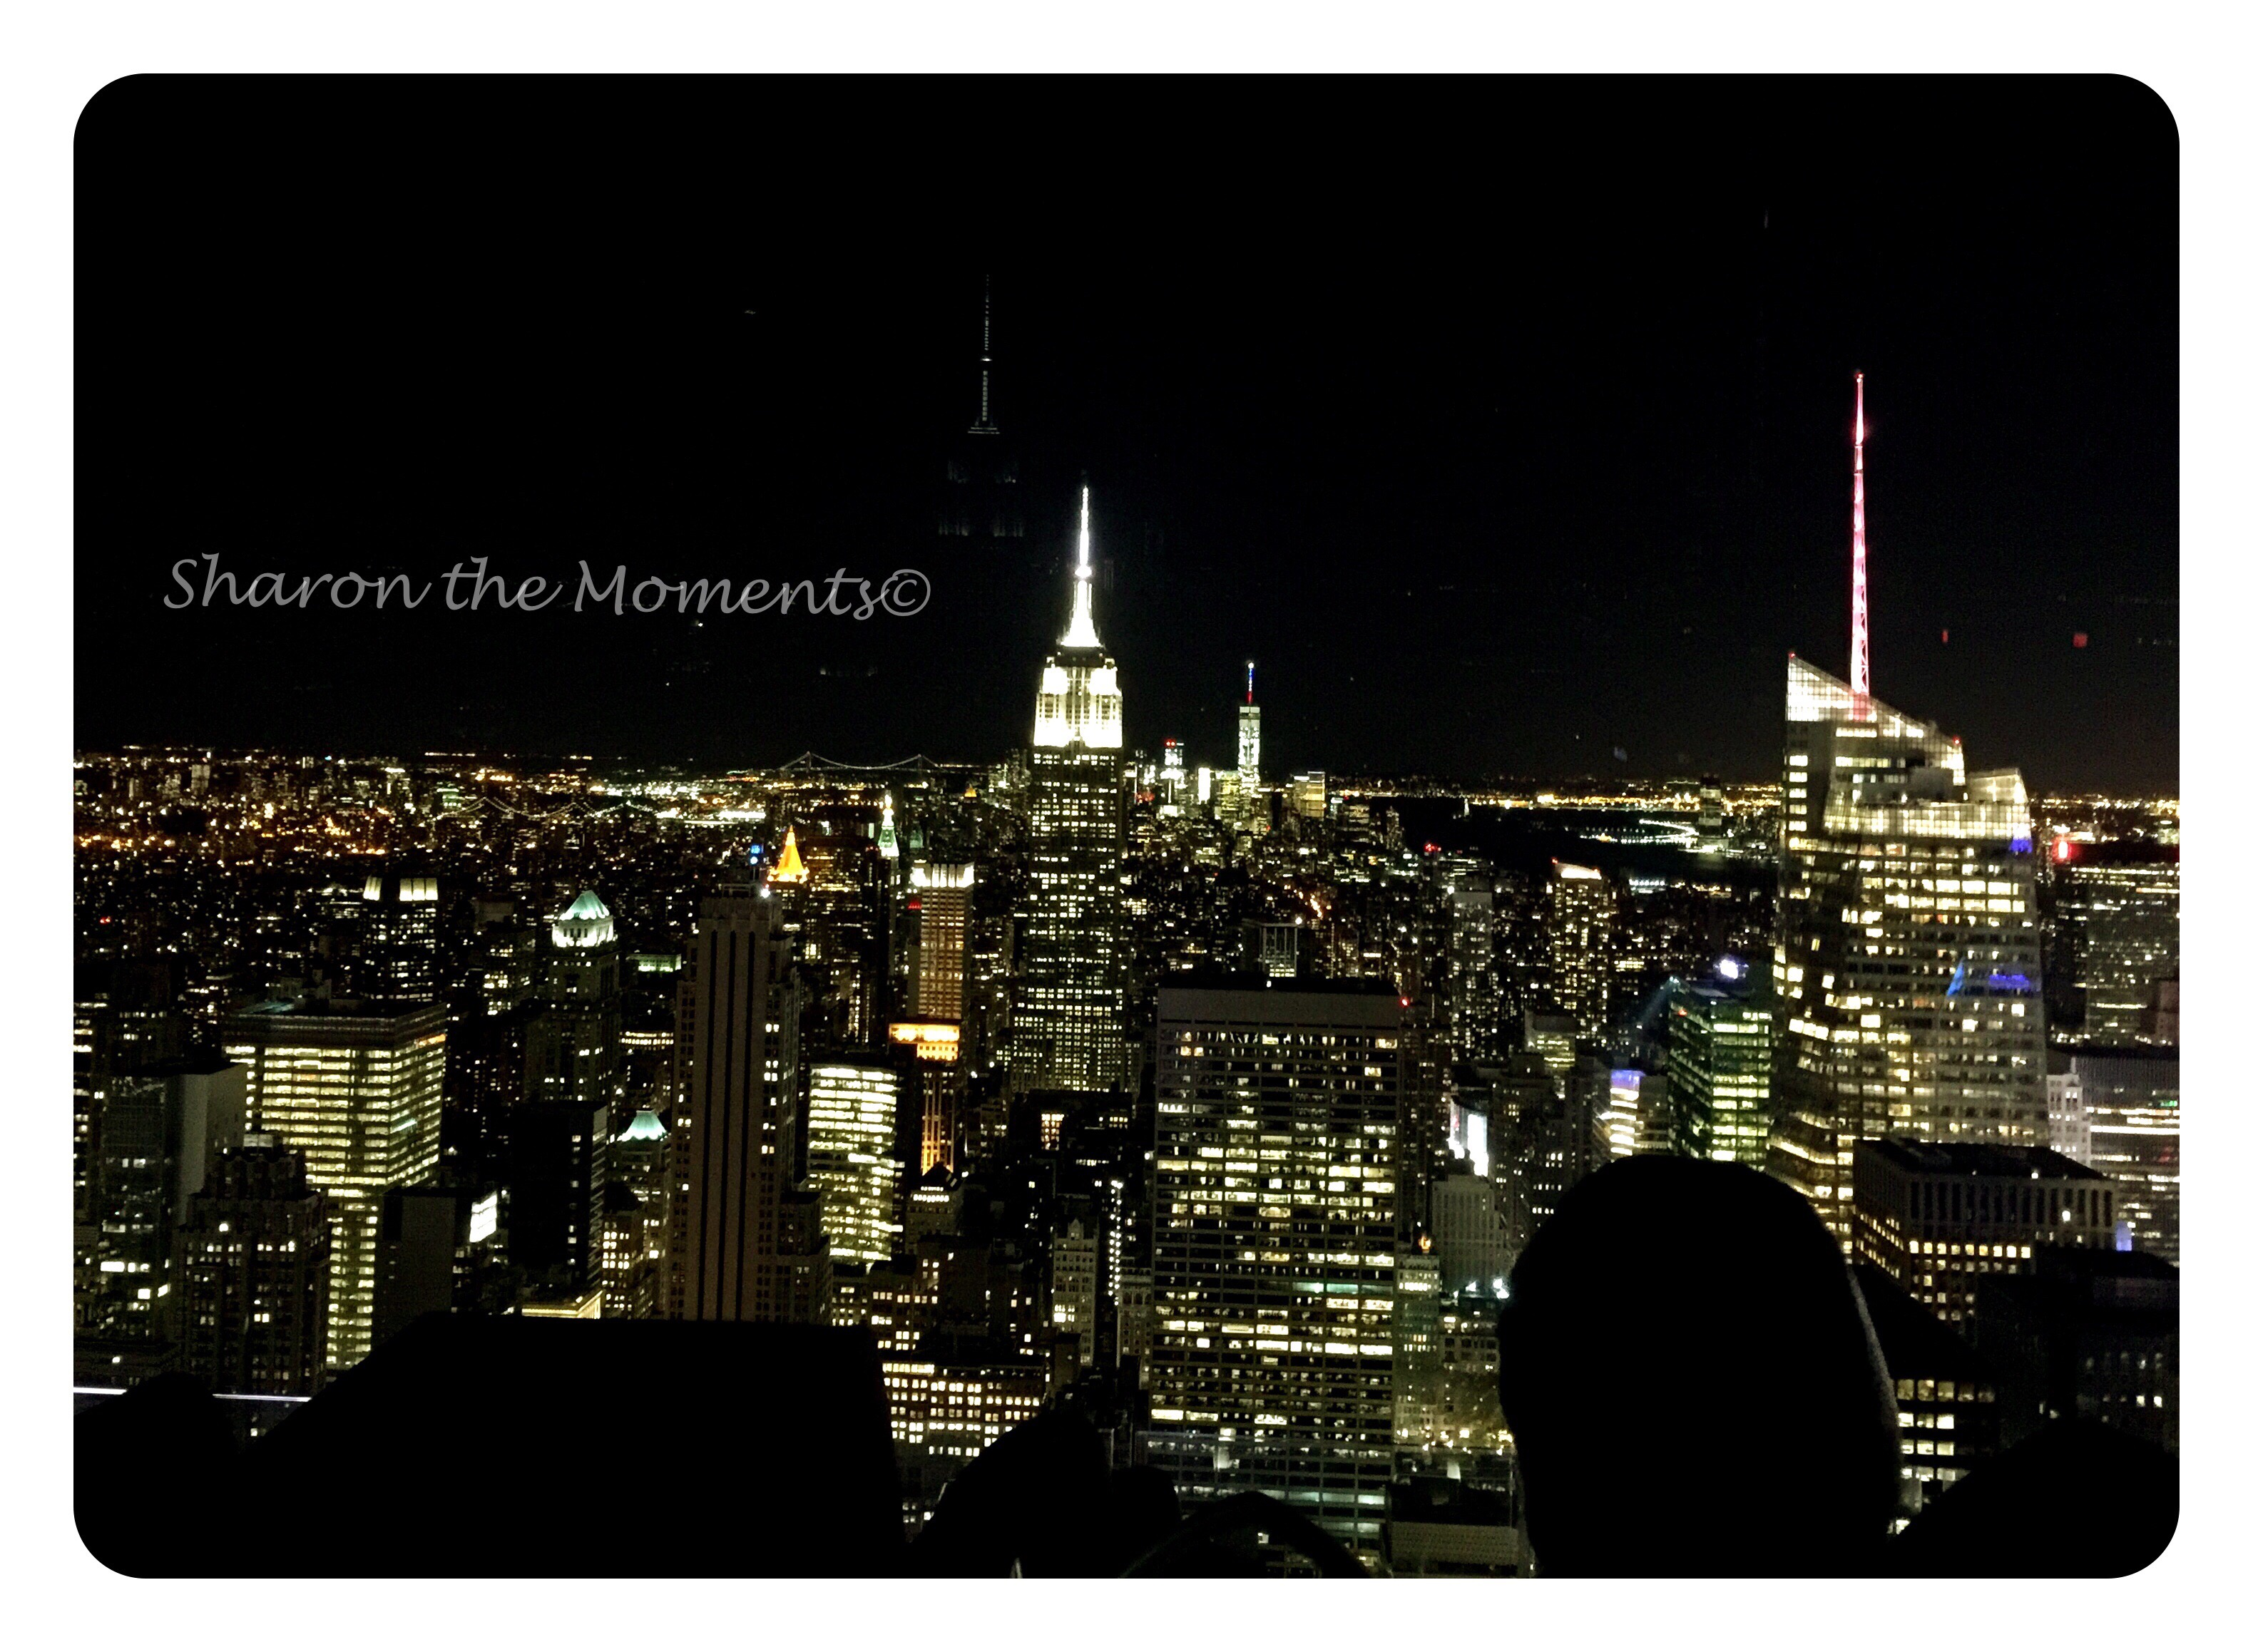 Top of the Rock and Rockefeller Center in New York City